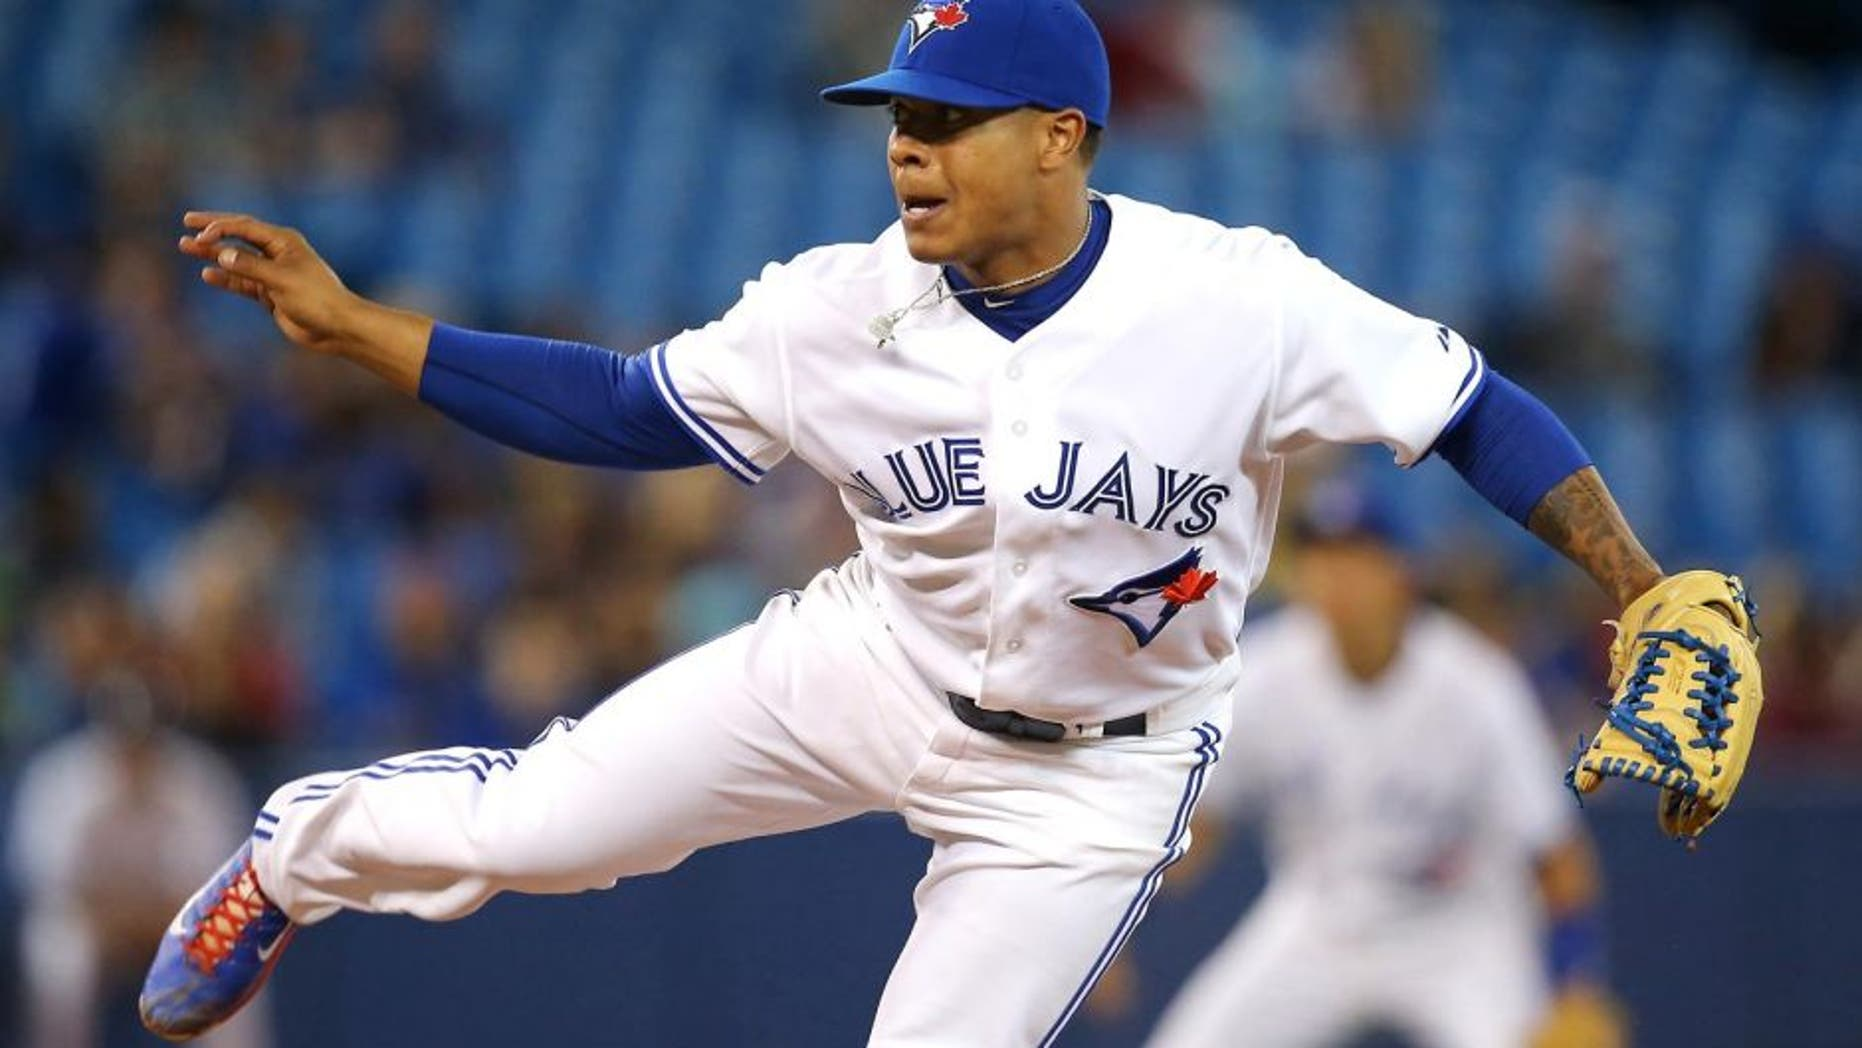 TORONTO, CANADA - SEPTEMBER 26: Marcus Stroman #54 of the Toronto Blue Jays delivers a pitch during MLB game action against the Baltimore Orioles on September 26, 2014 at Rogers Centre in Toronto, Ontario, Canada. (Photo by Tom Szczerbowski/Getty Images)